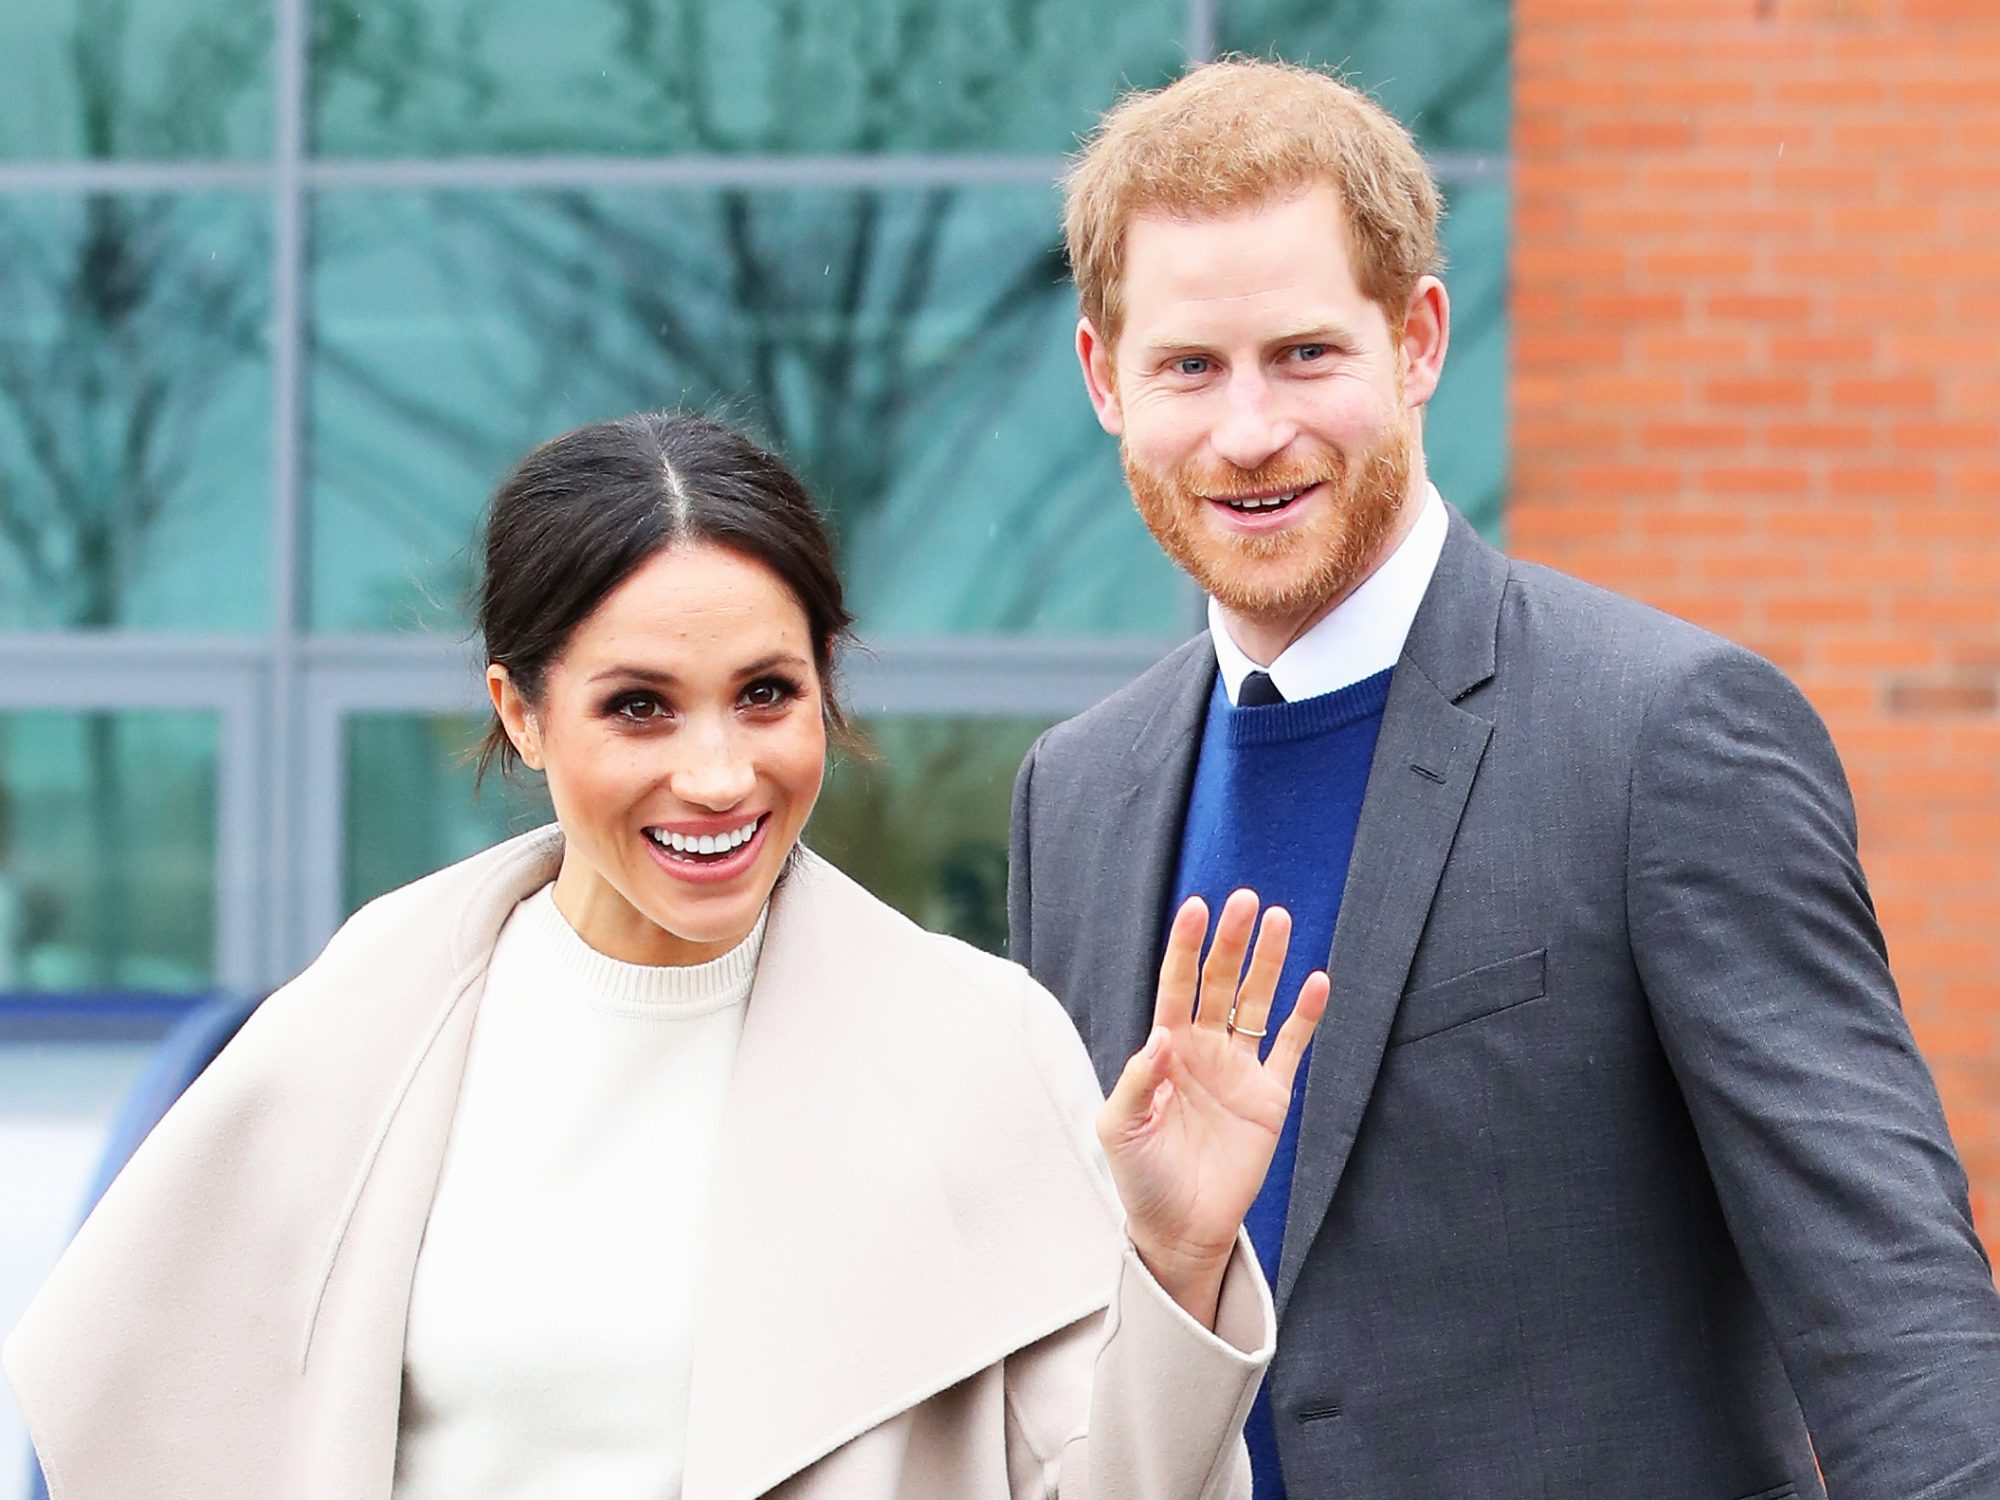 Here's a First Look atMeghan and Harry's Wedding Cake Preparations